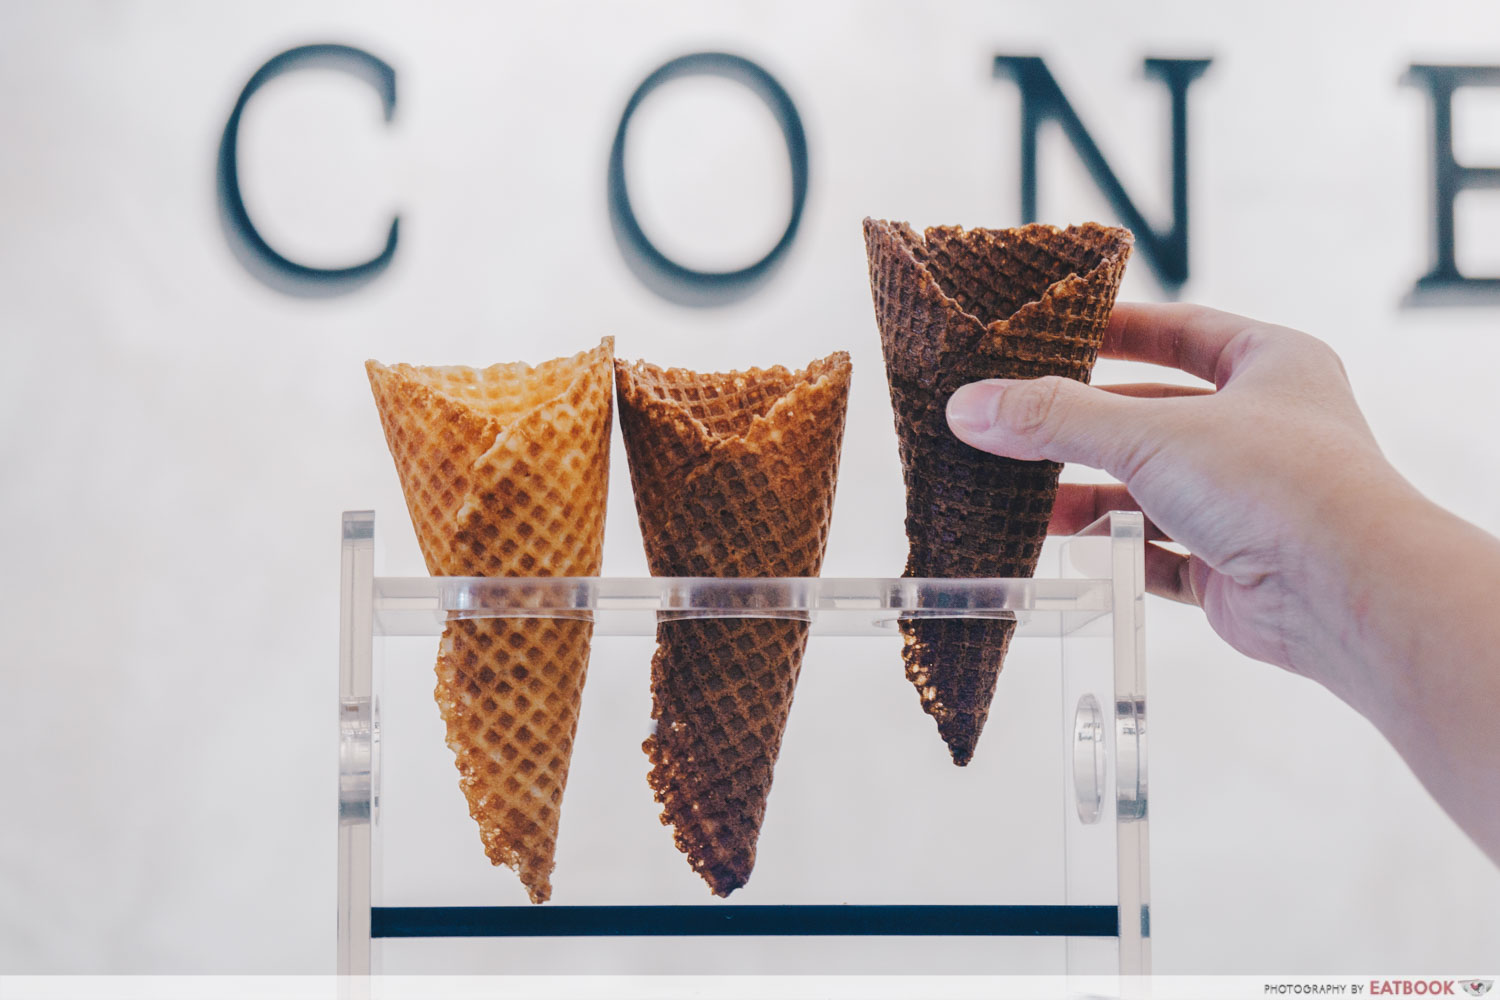 Burnt Cones - choice of burnt cones